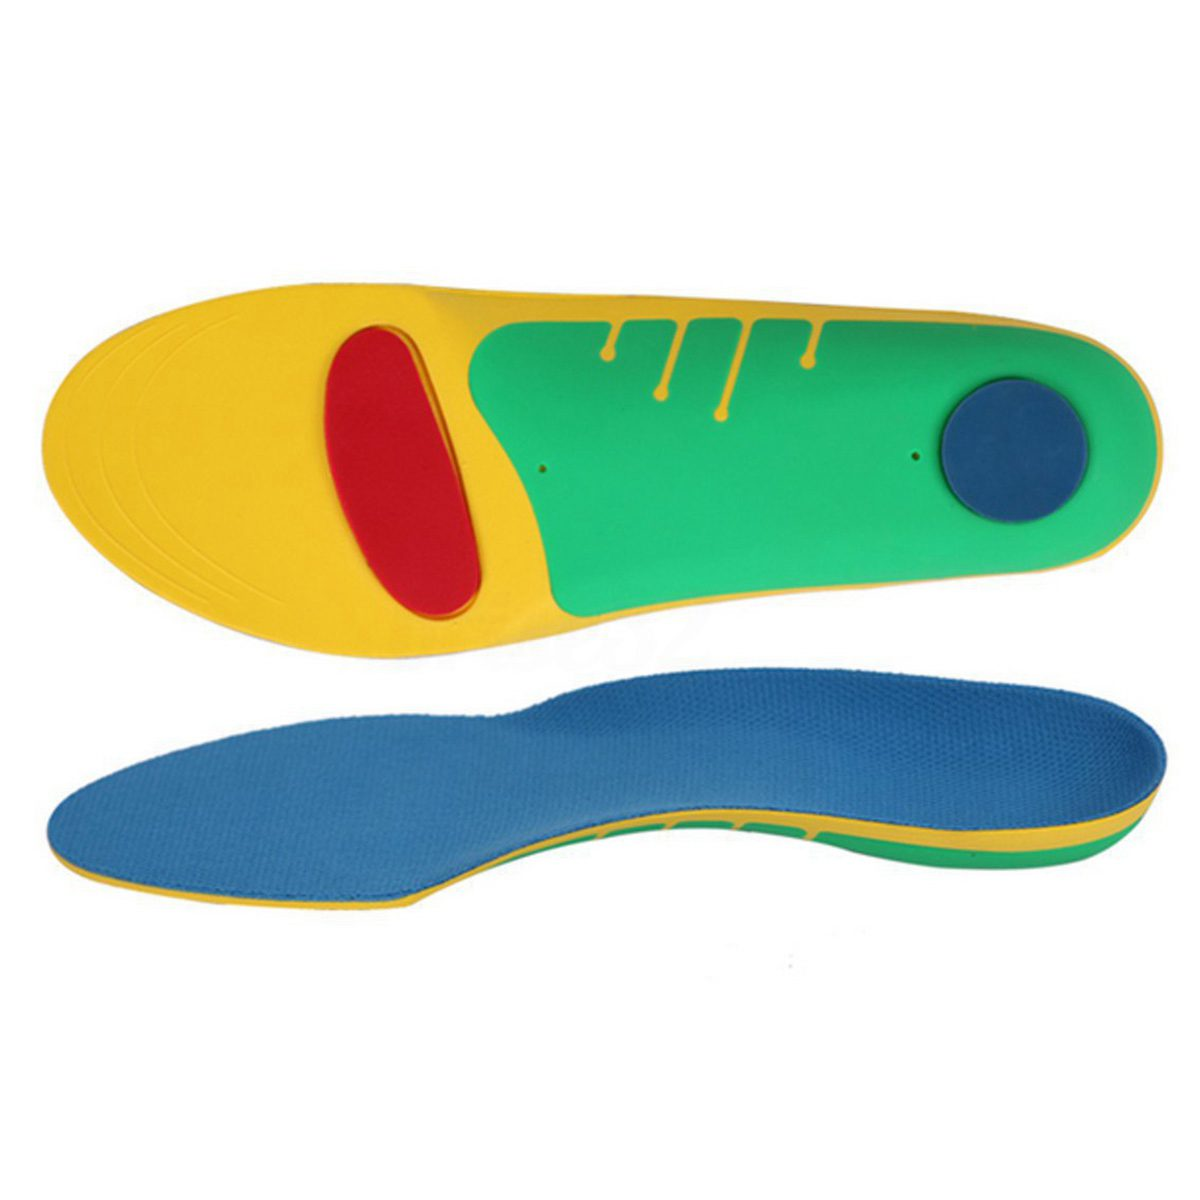 Pair Orthotic Shoes Insoles Insert High Arch Support Pad Accessory Women Men, L